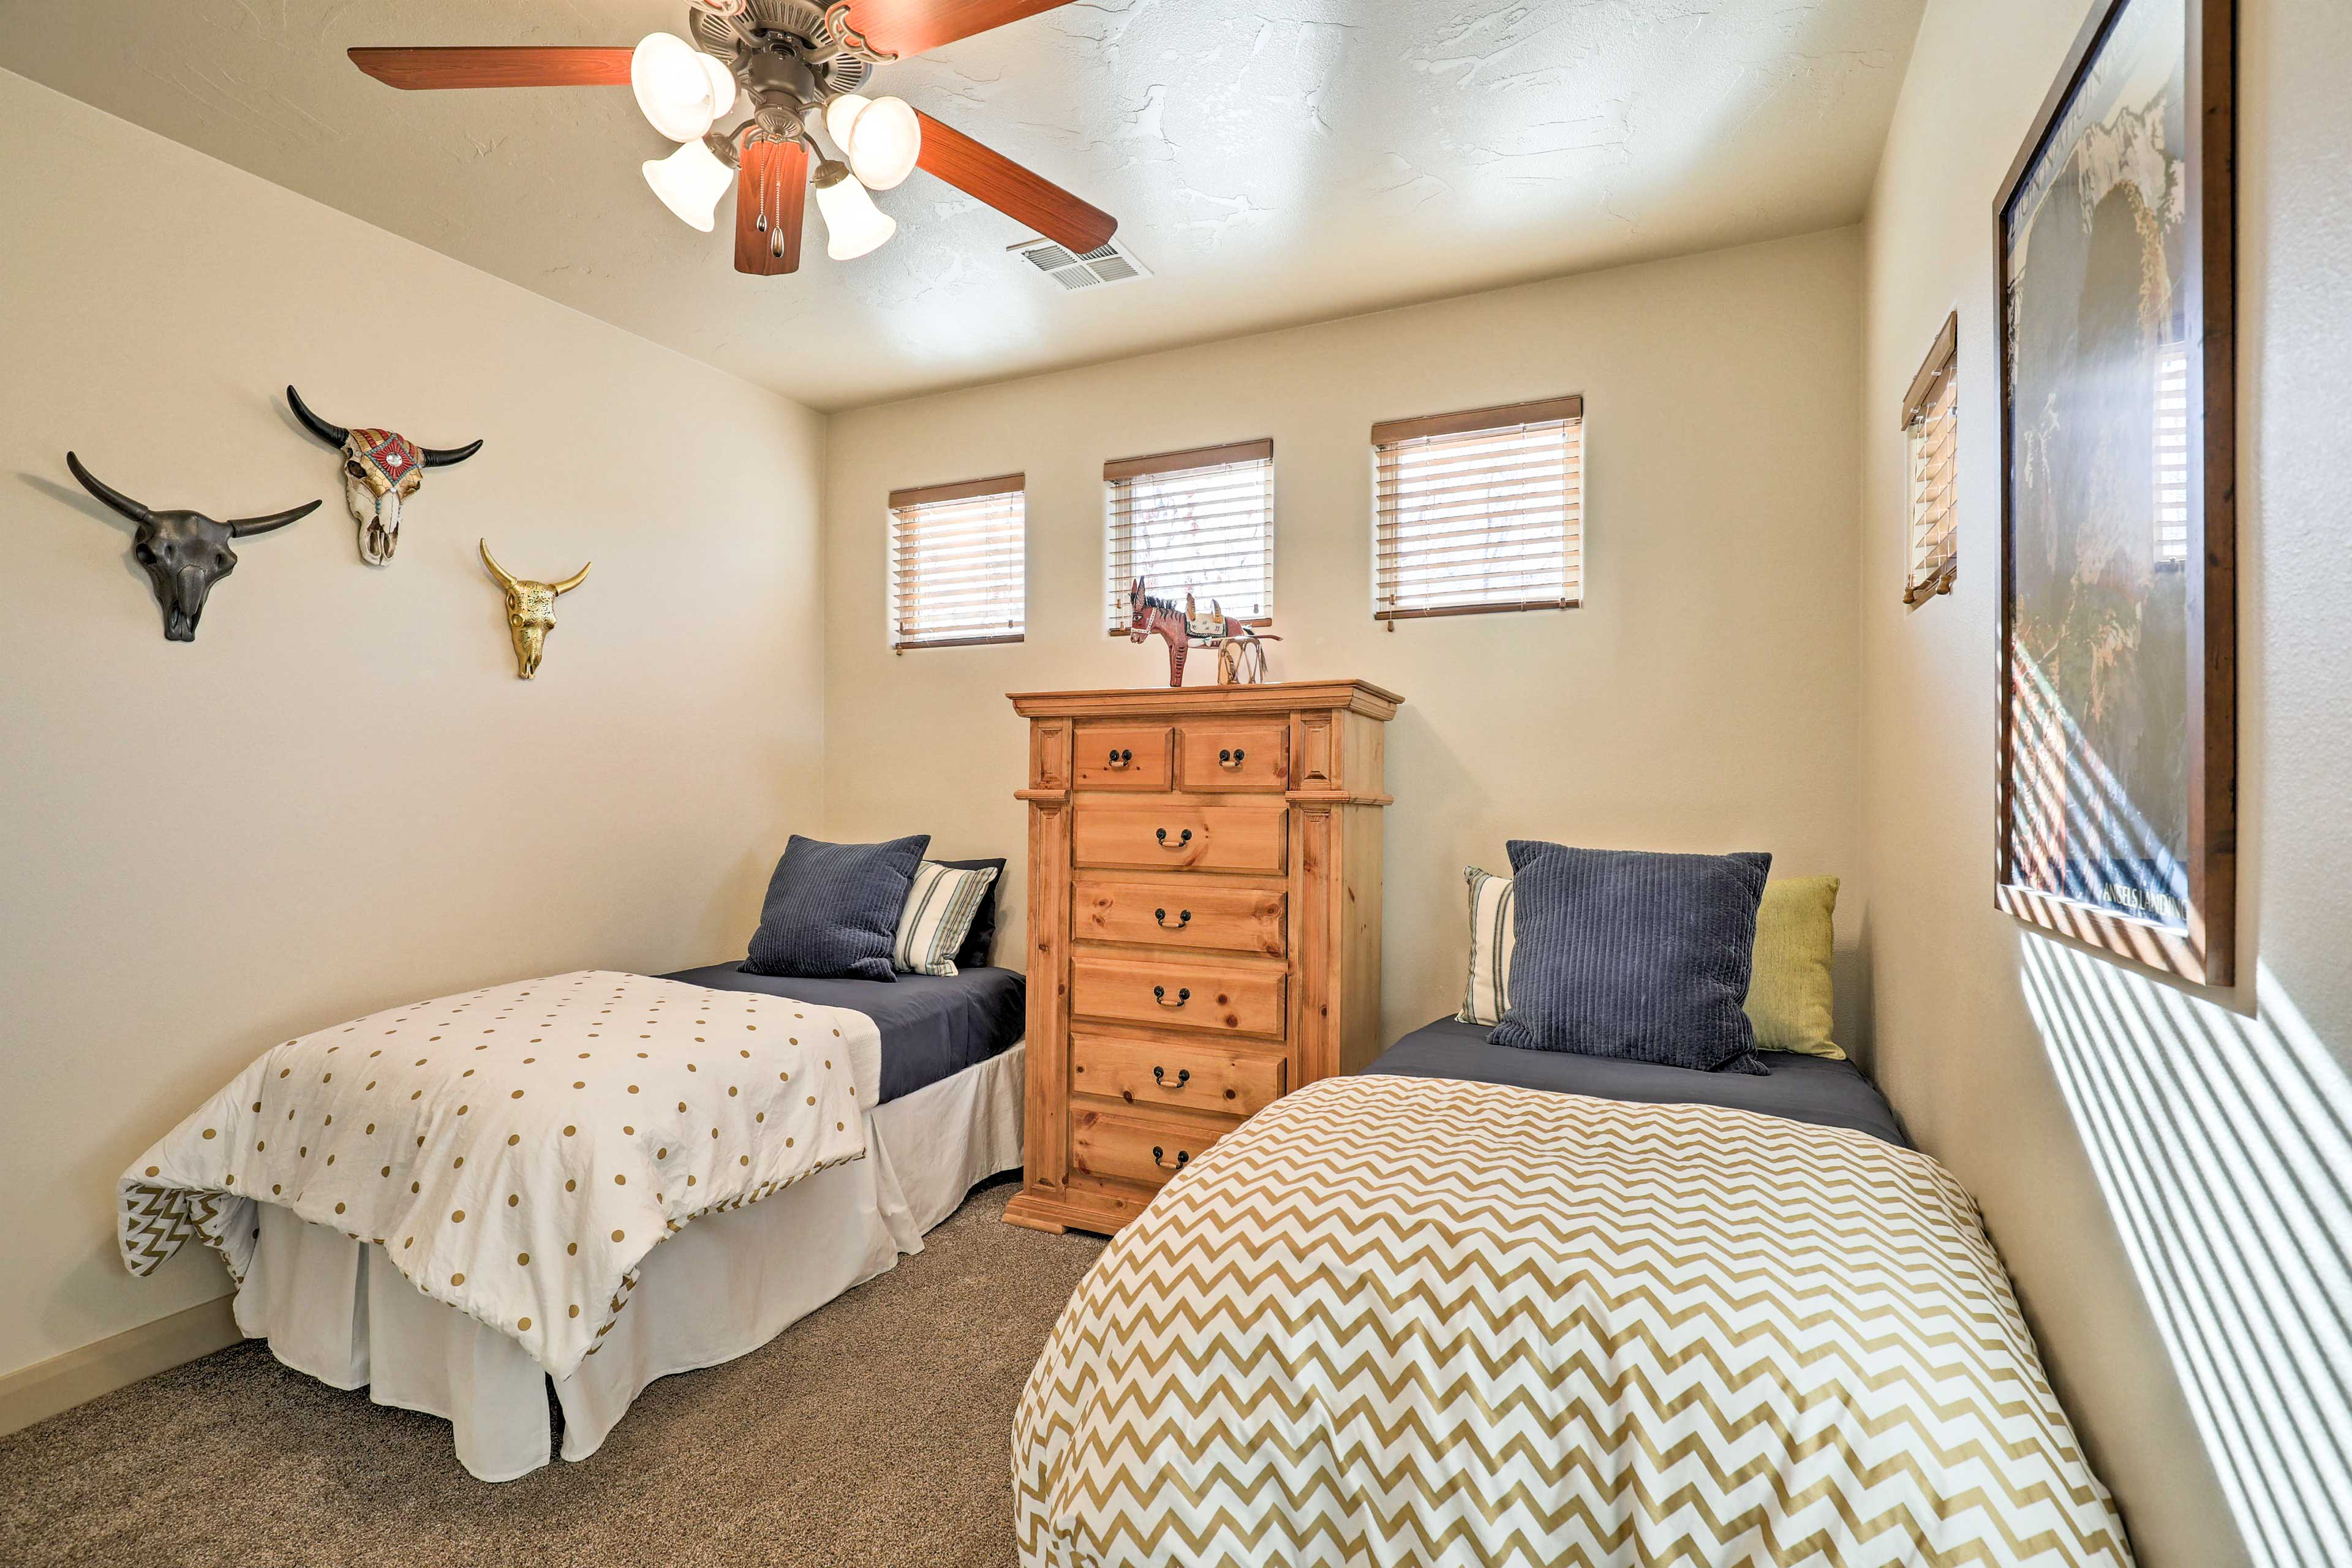 The third bedroom sleeps 2 with 2 twin beds.